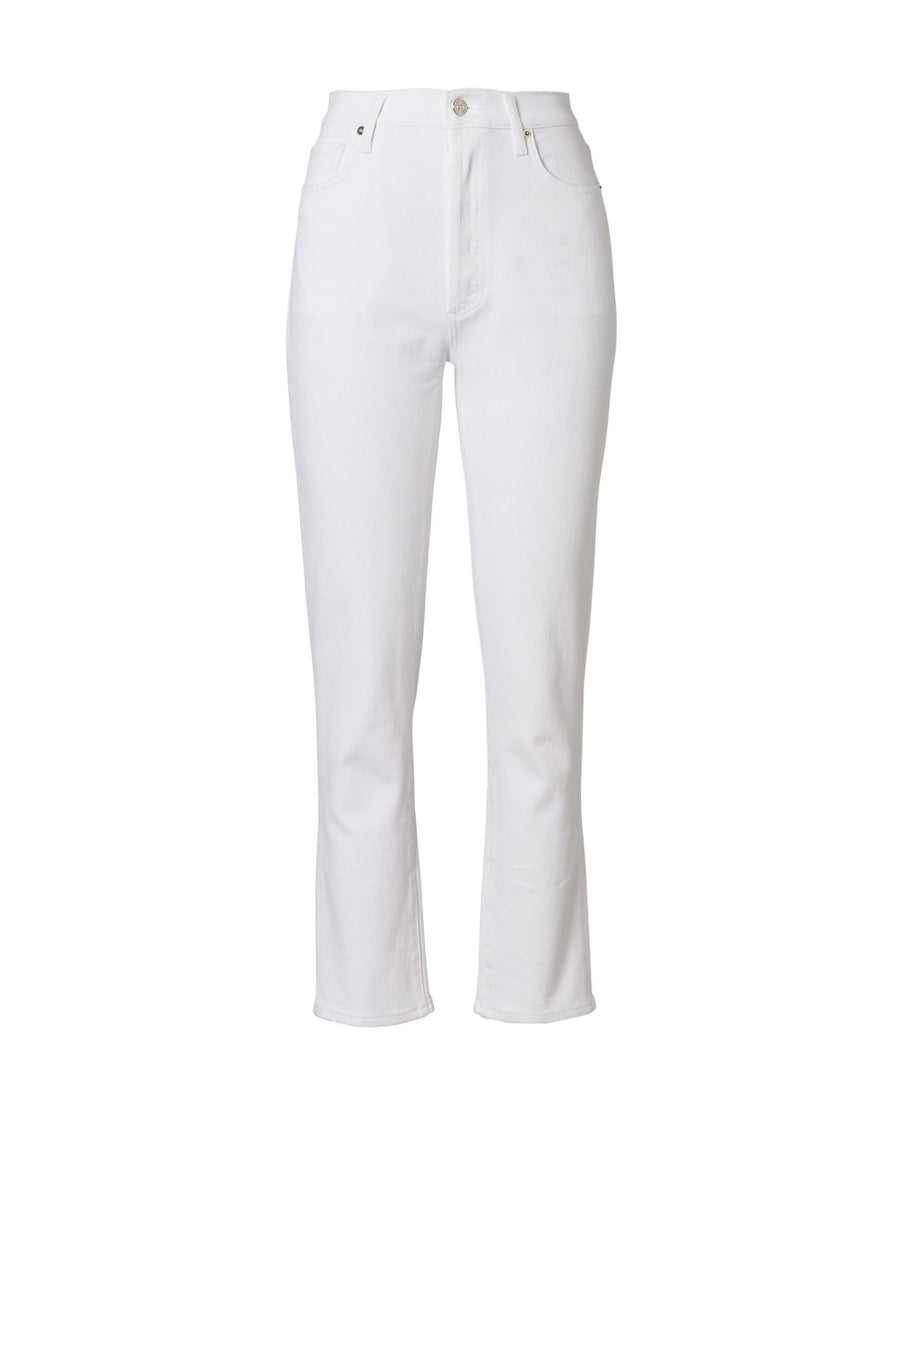 HIGH RISE STRAIGHT CROP JEAN WHITE